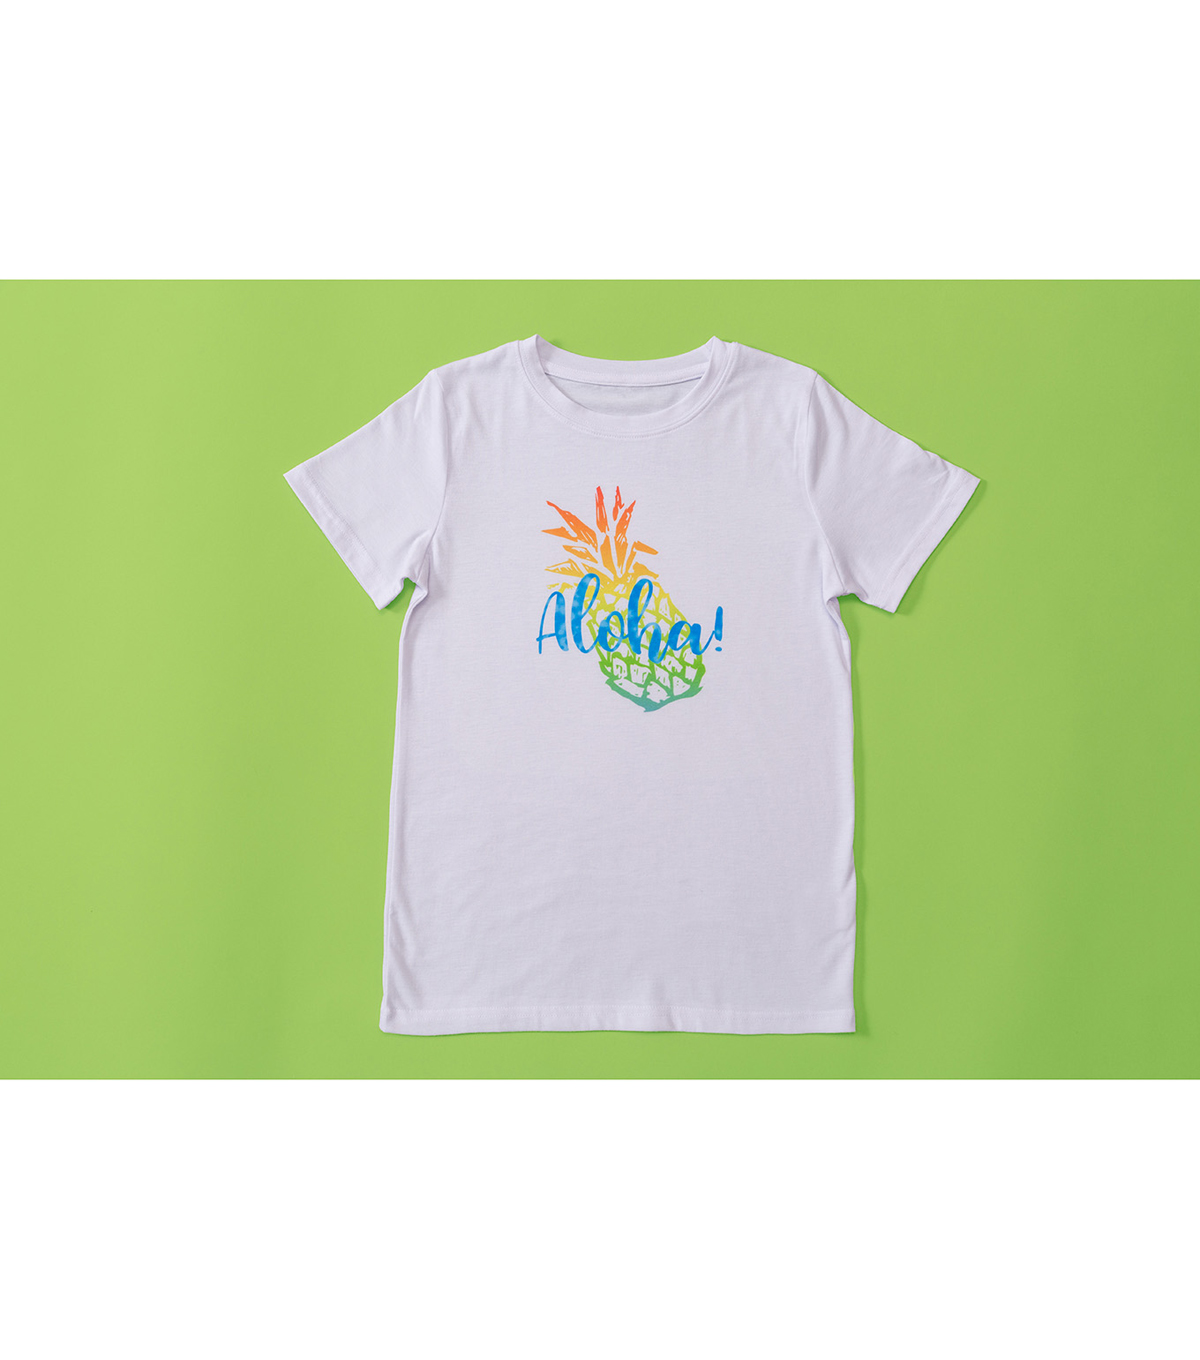 Cricut Infusible Ink Youth Crew Neck T-Shirt -White